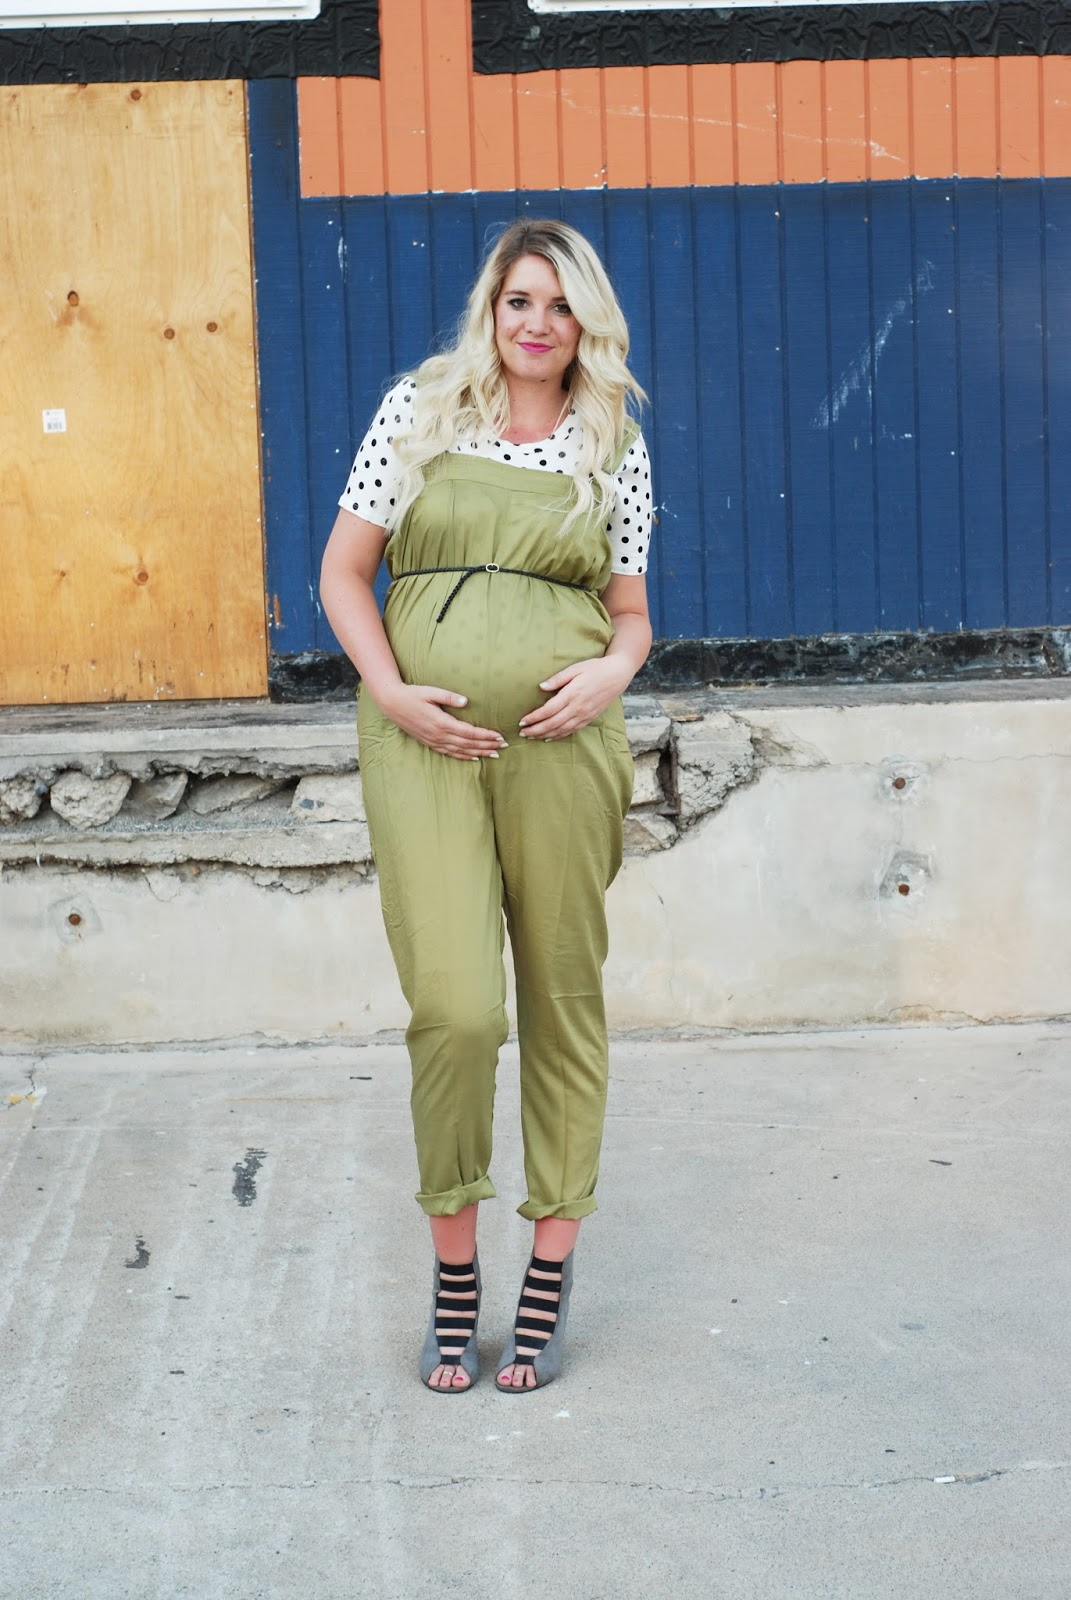 Maternity Outfit, Maternity Style, Pregnant Outfit, Pregnant Style